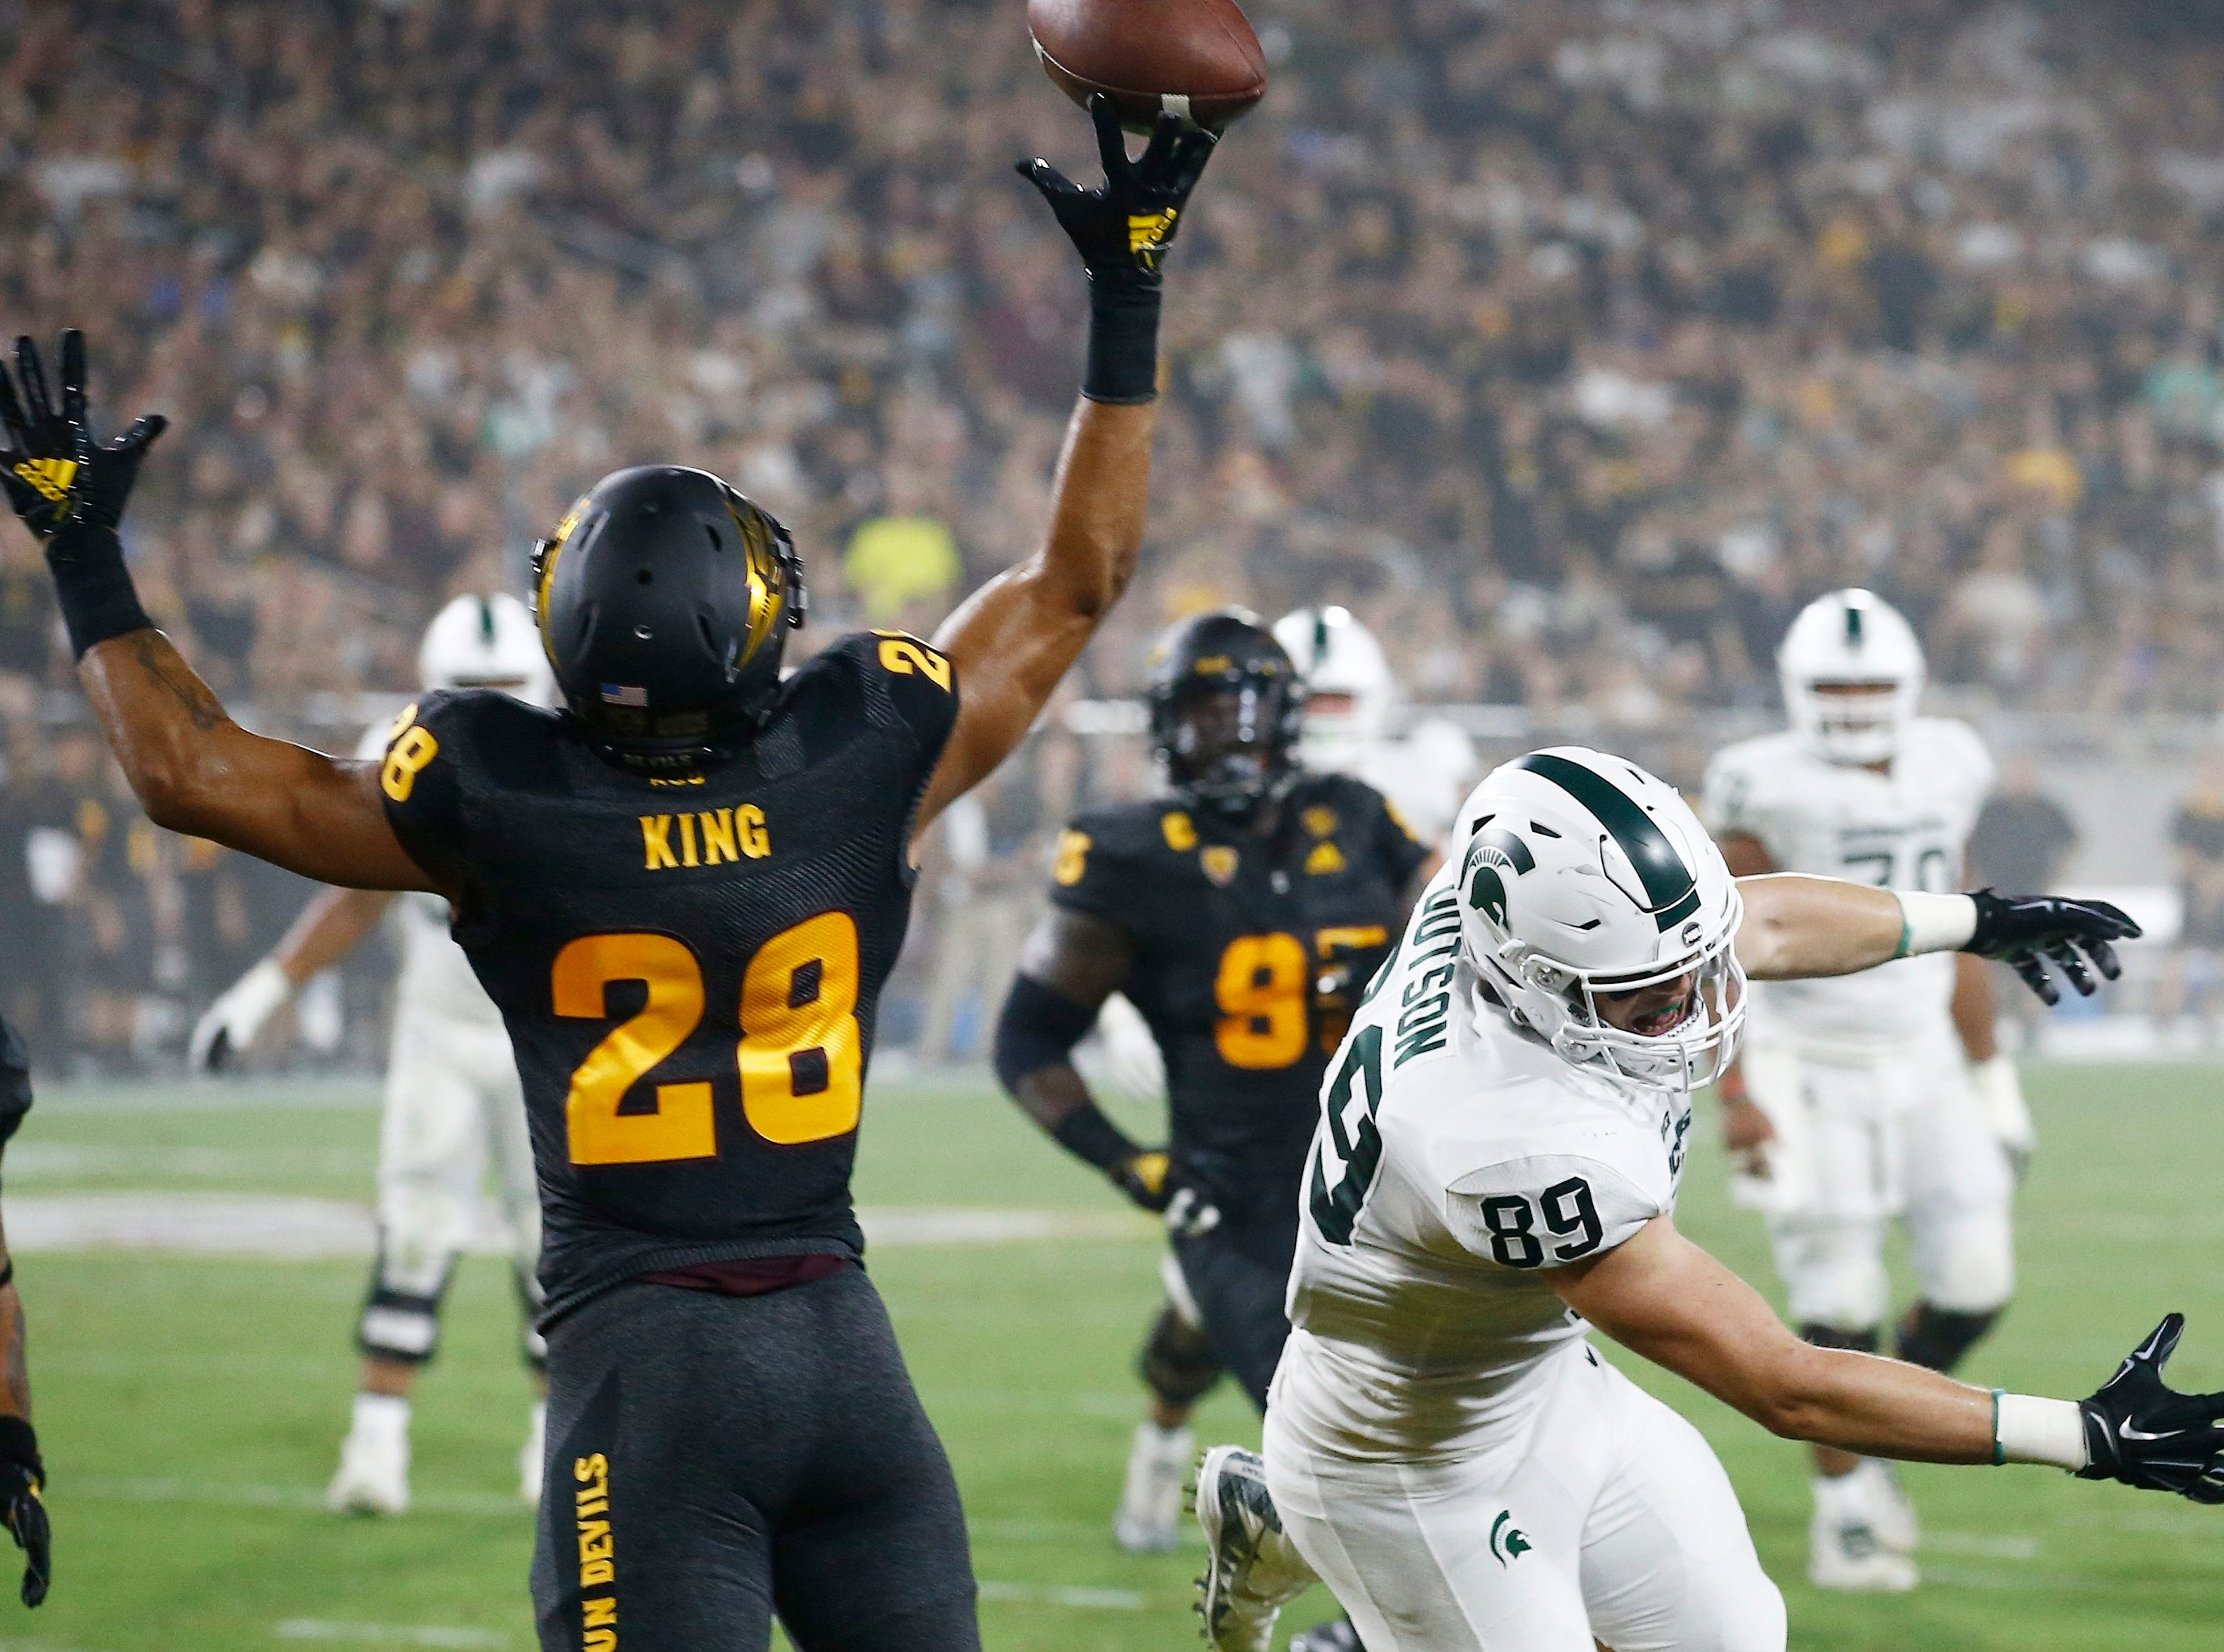 Arizona State defensive back Demonte King (28) tips a pass intended for Michigan State tight end Matt Dotson (89) during the first half of an NCAA college football game Saturday, Sept. 8, 2018, in Tempe, Ariz. (AP Photo/Ross D. Franklin)